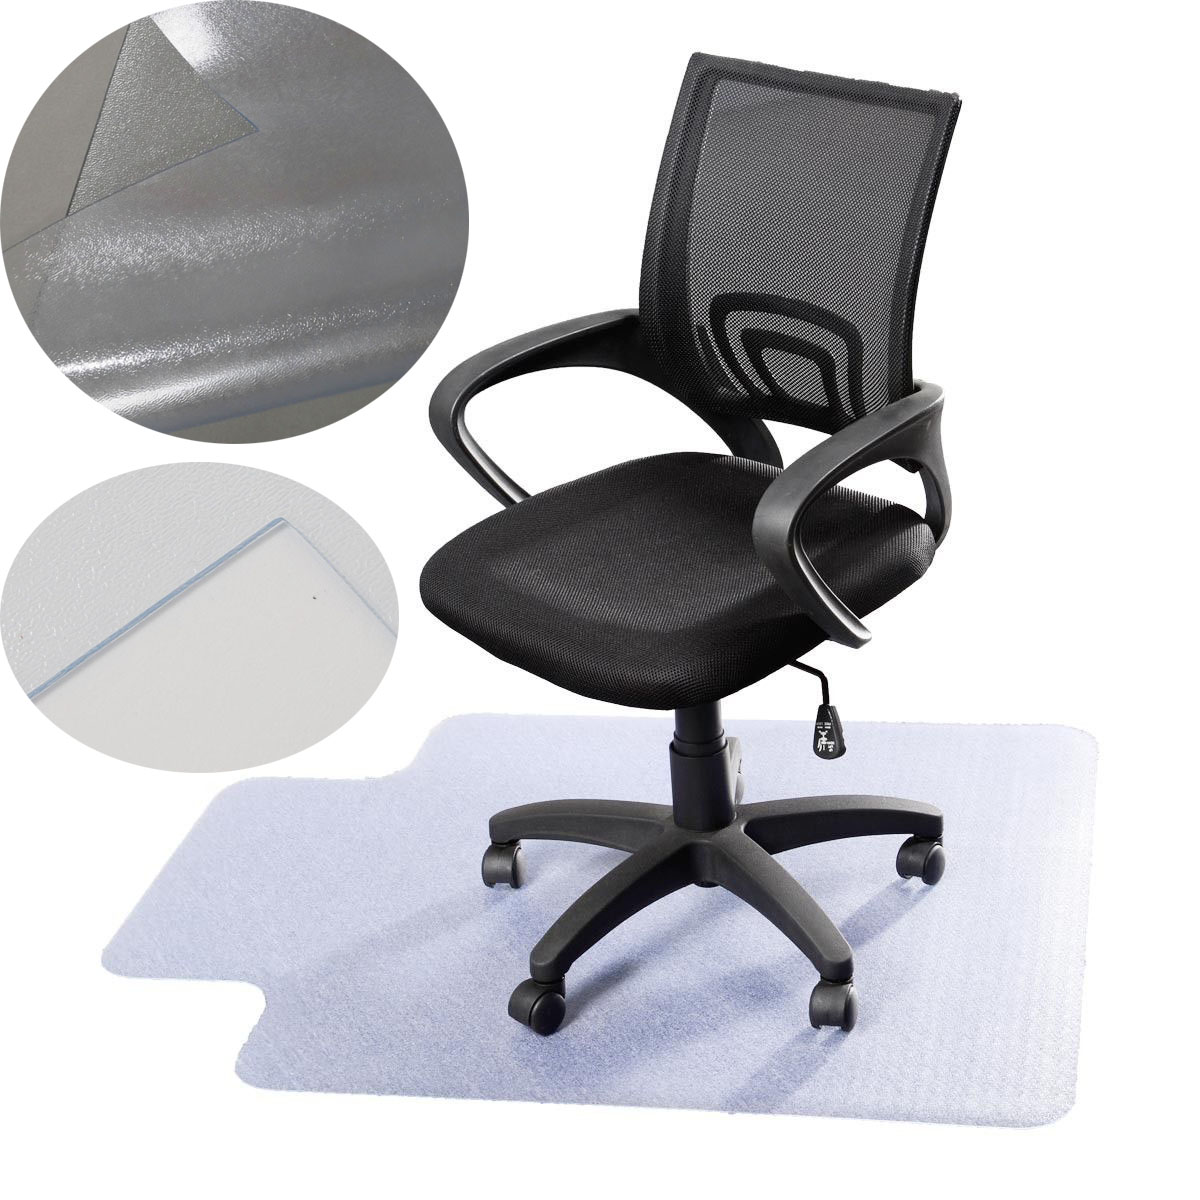 pro desk office chair floor mat protector for hard wood floors 48 39 39 x 36 39 39 new ebay. Black Bedroom Furniture Sets. Home Design Ideas